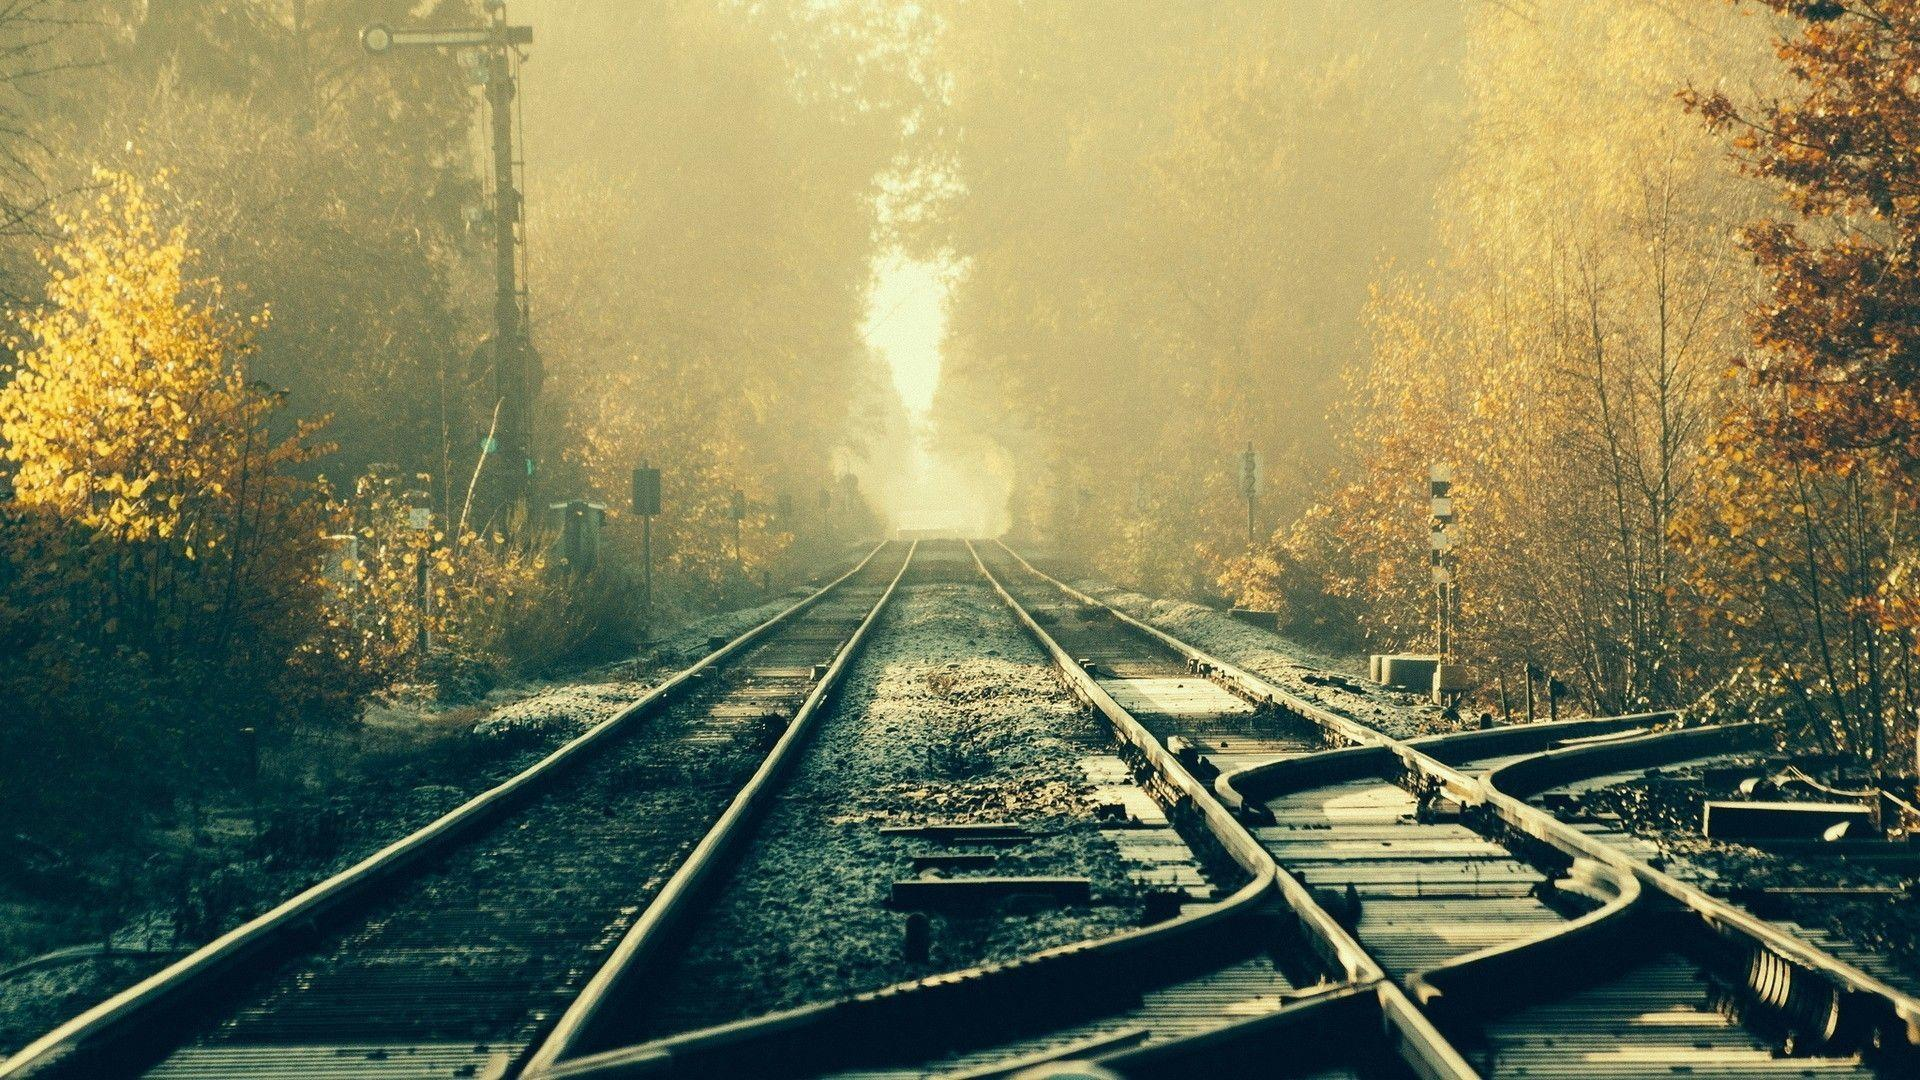 train, Railway, Tracks, Forest Wallpapers HD / Desktop and Mobile